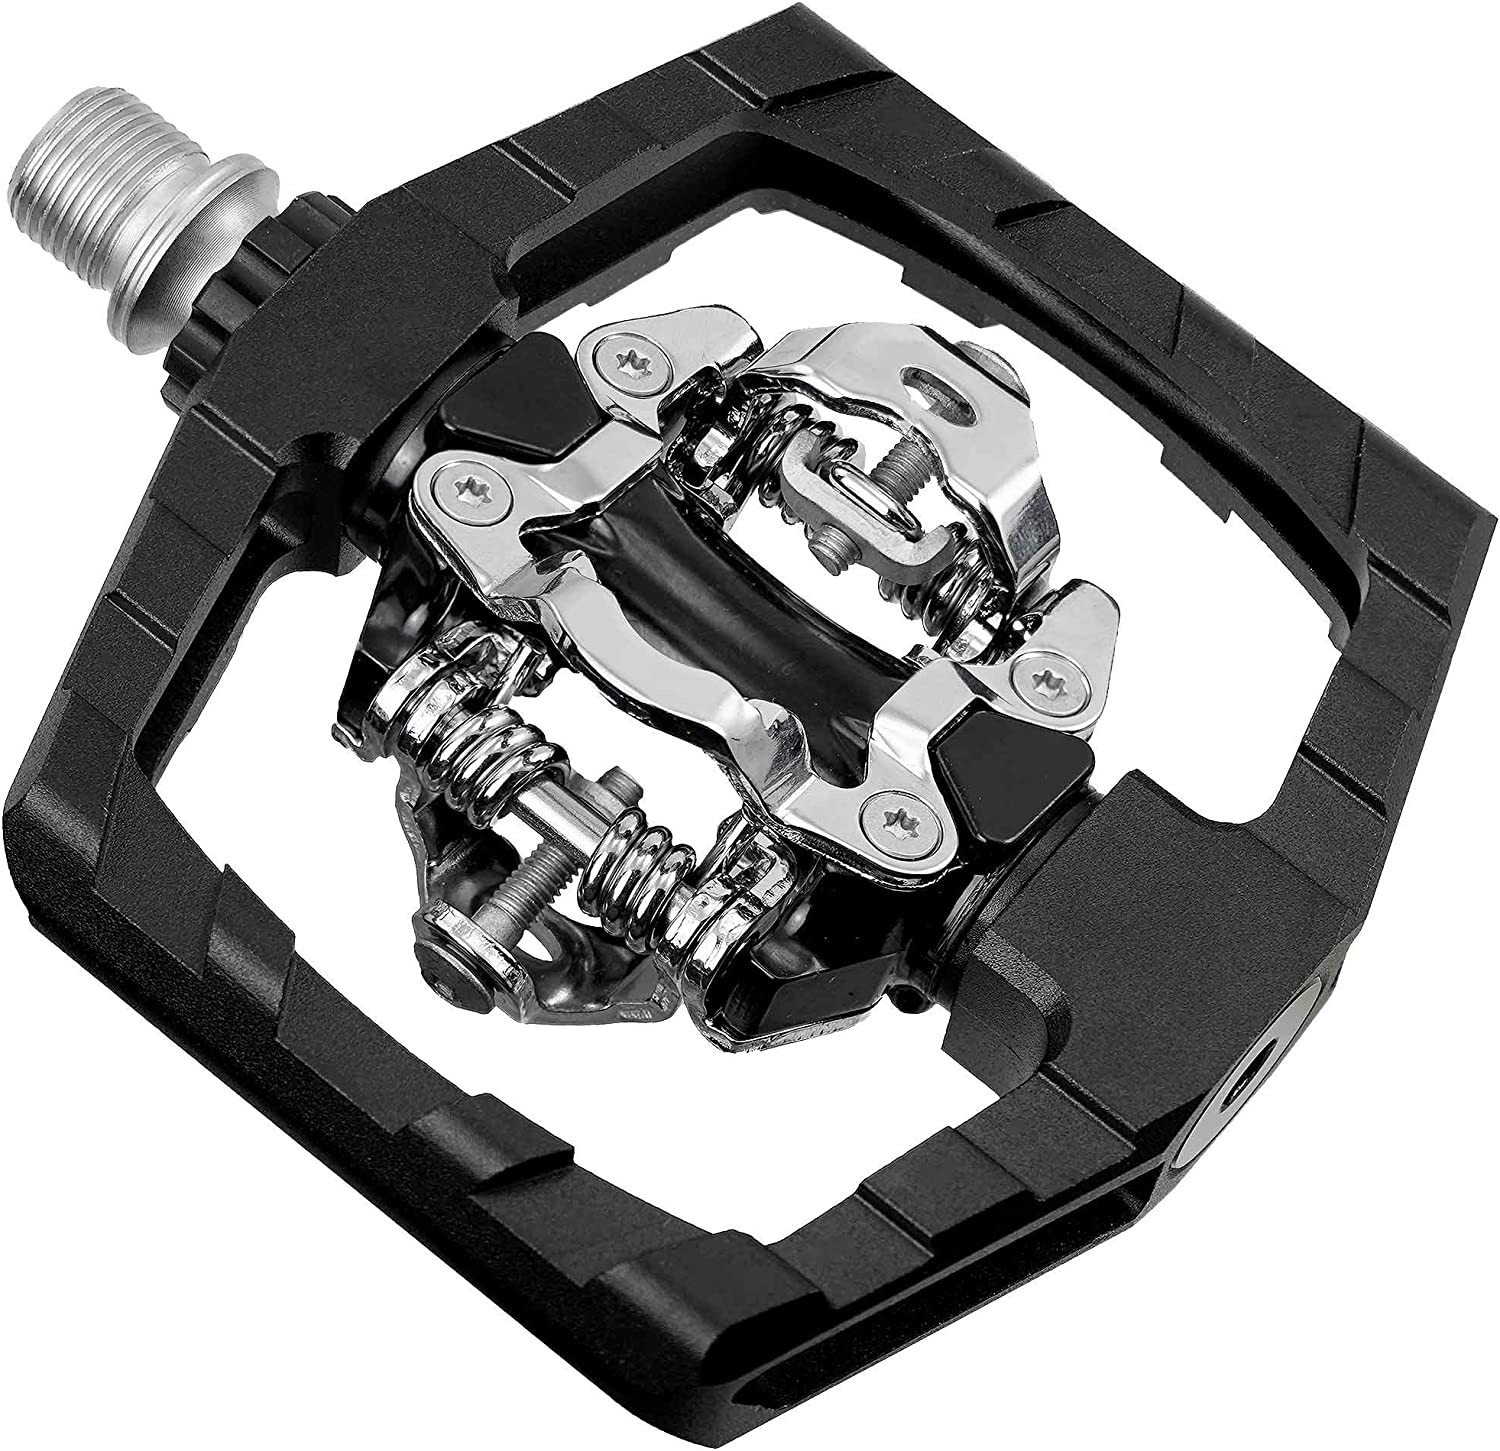 Venzo Click'R Compatible with Shimano